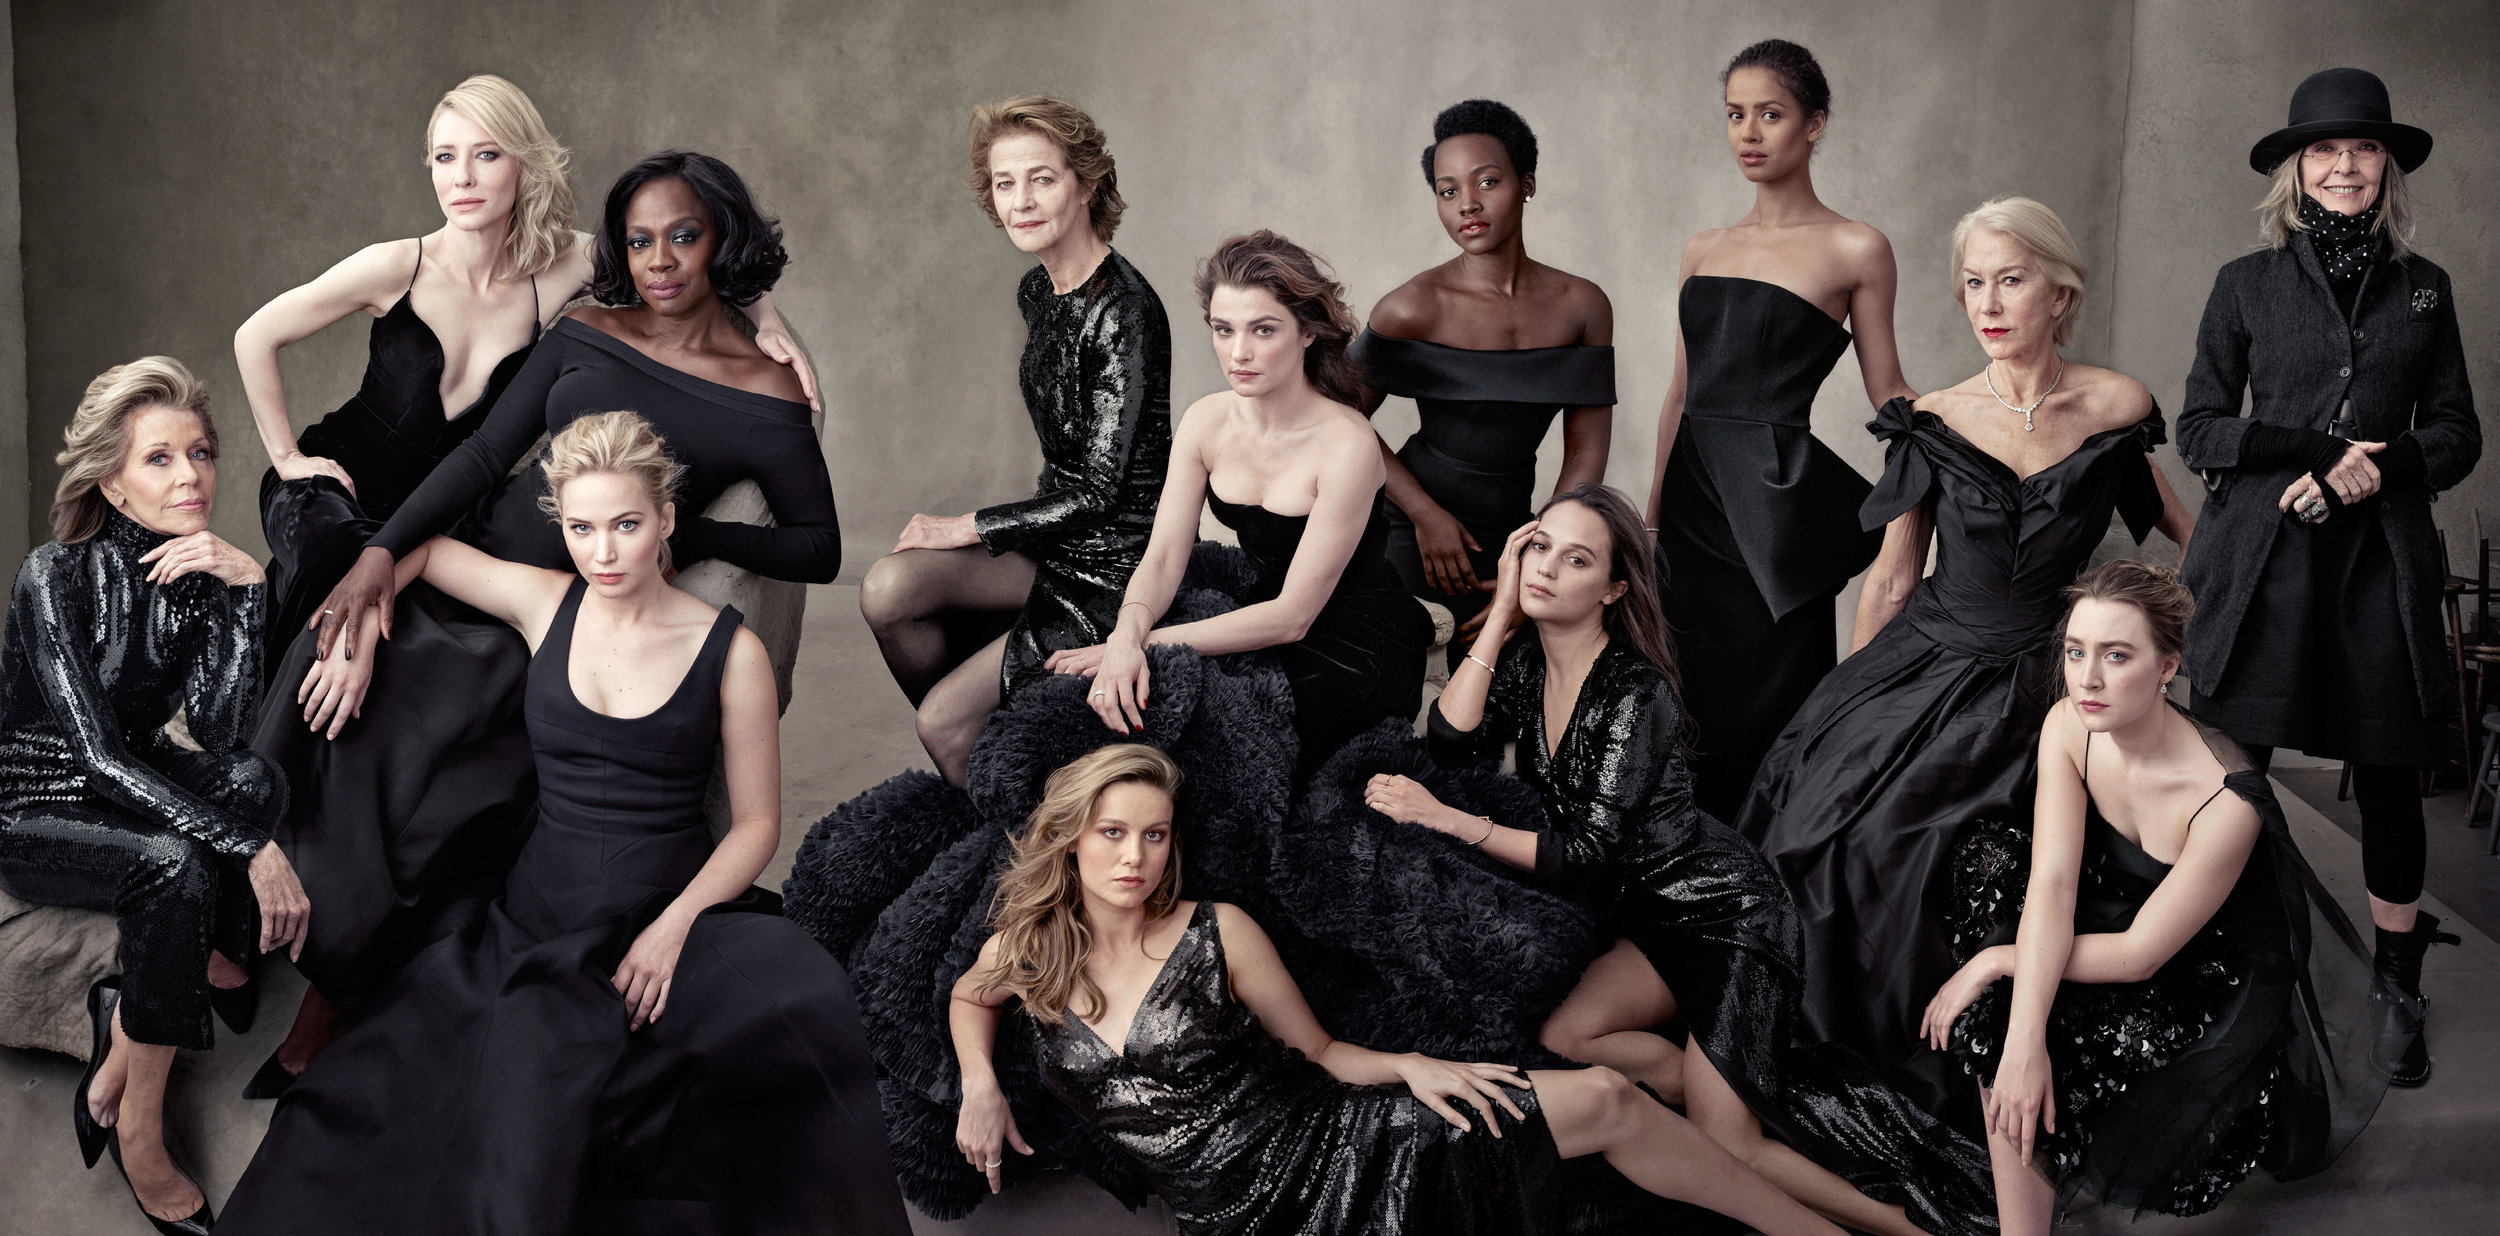 Photo credit: Annie Leibovitz